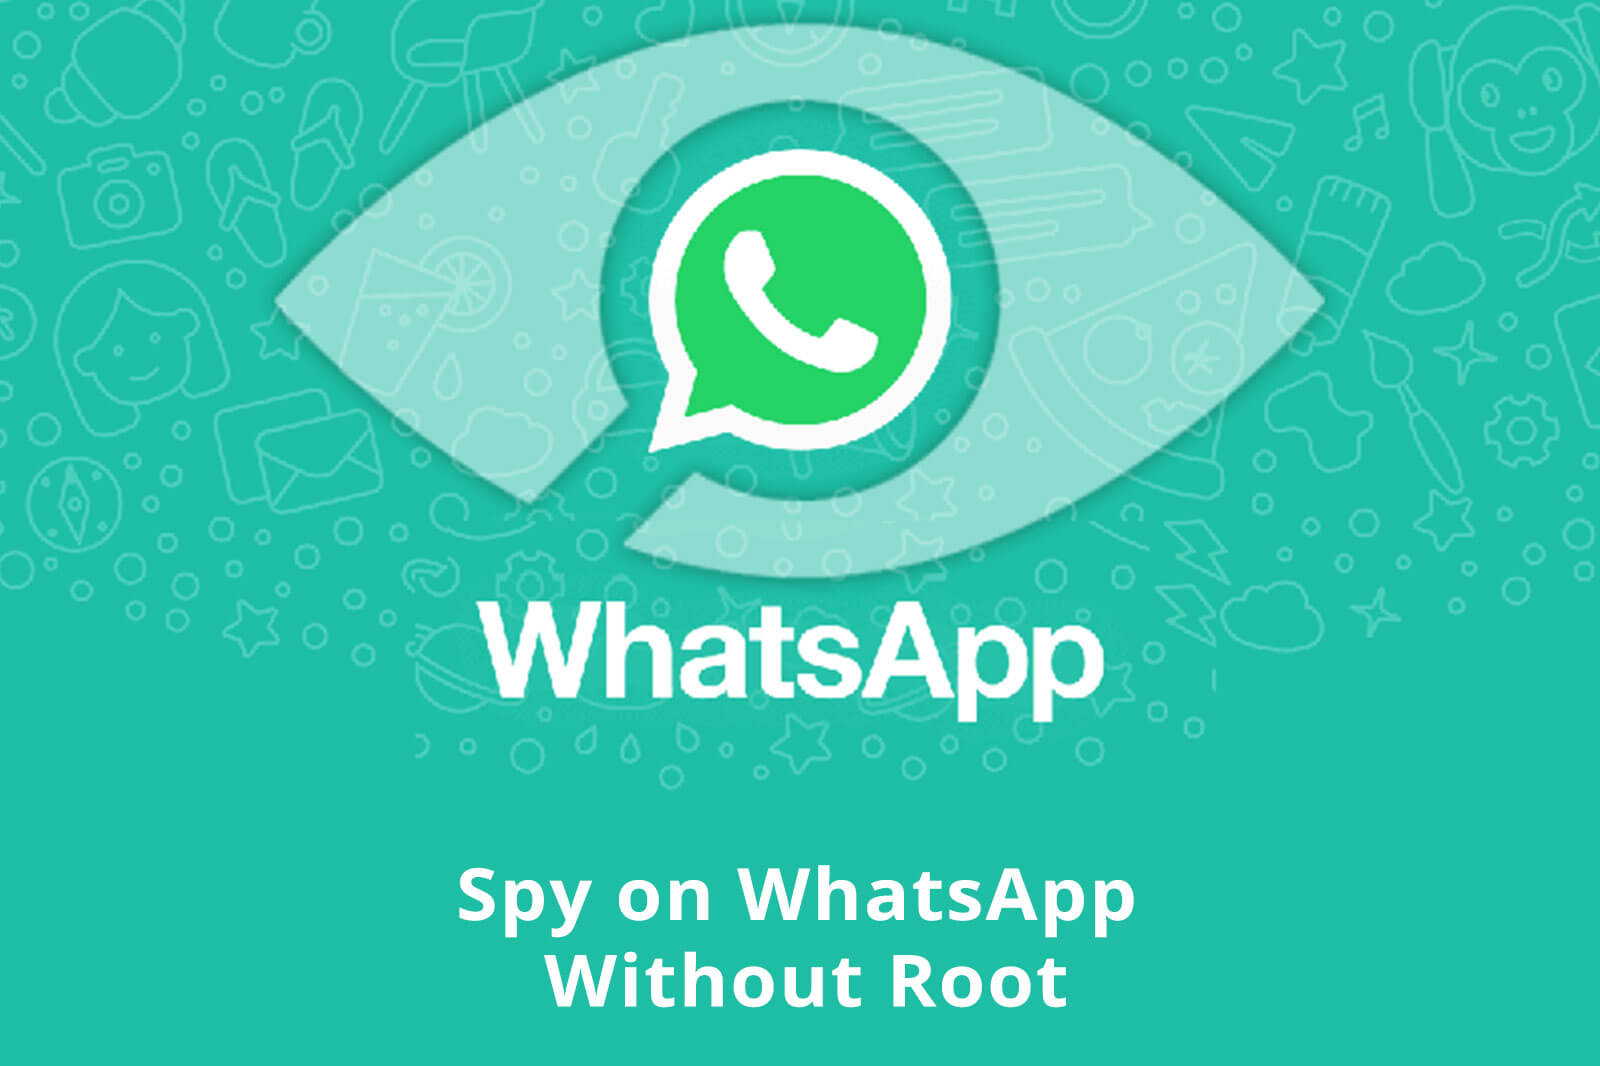 Spy on WhatsApp Without root